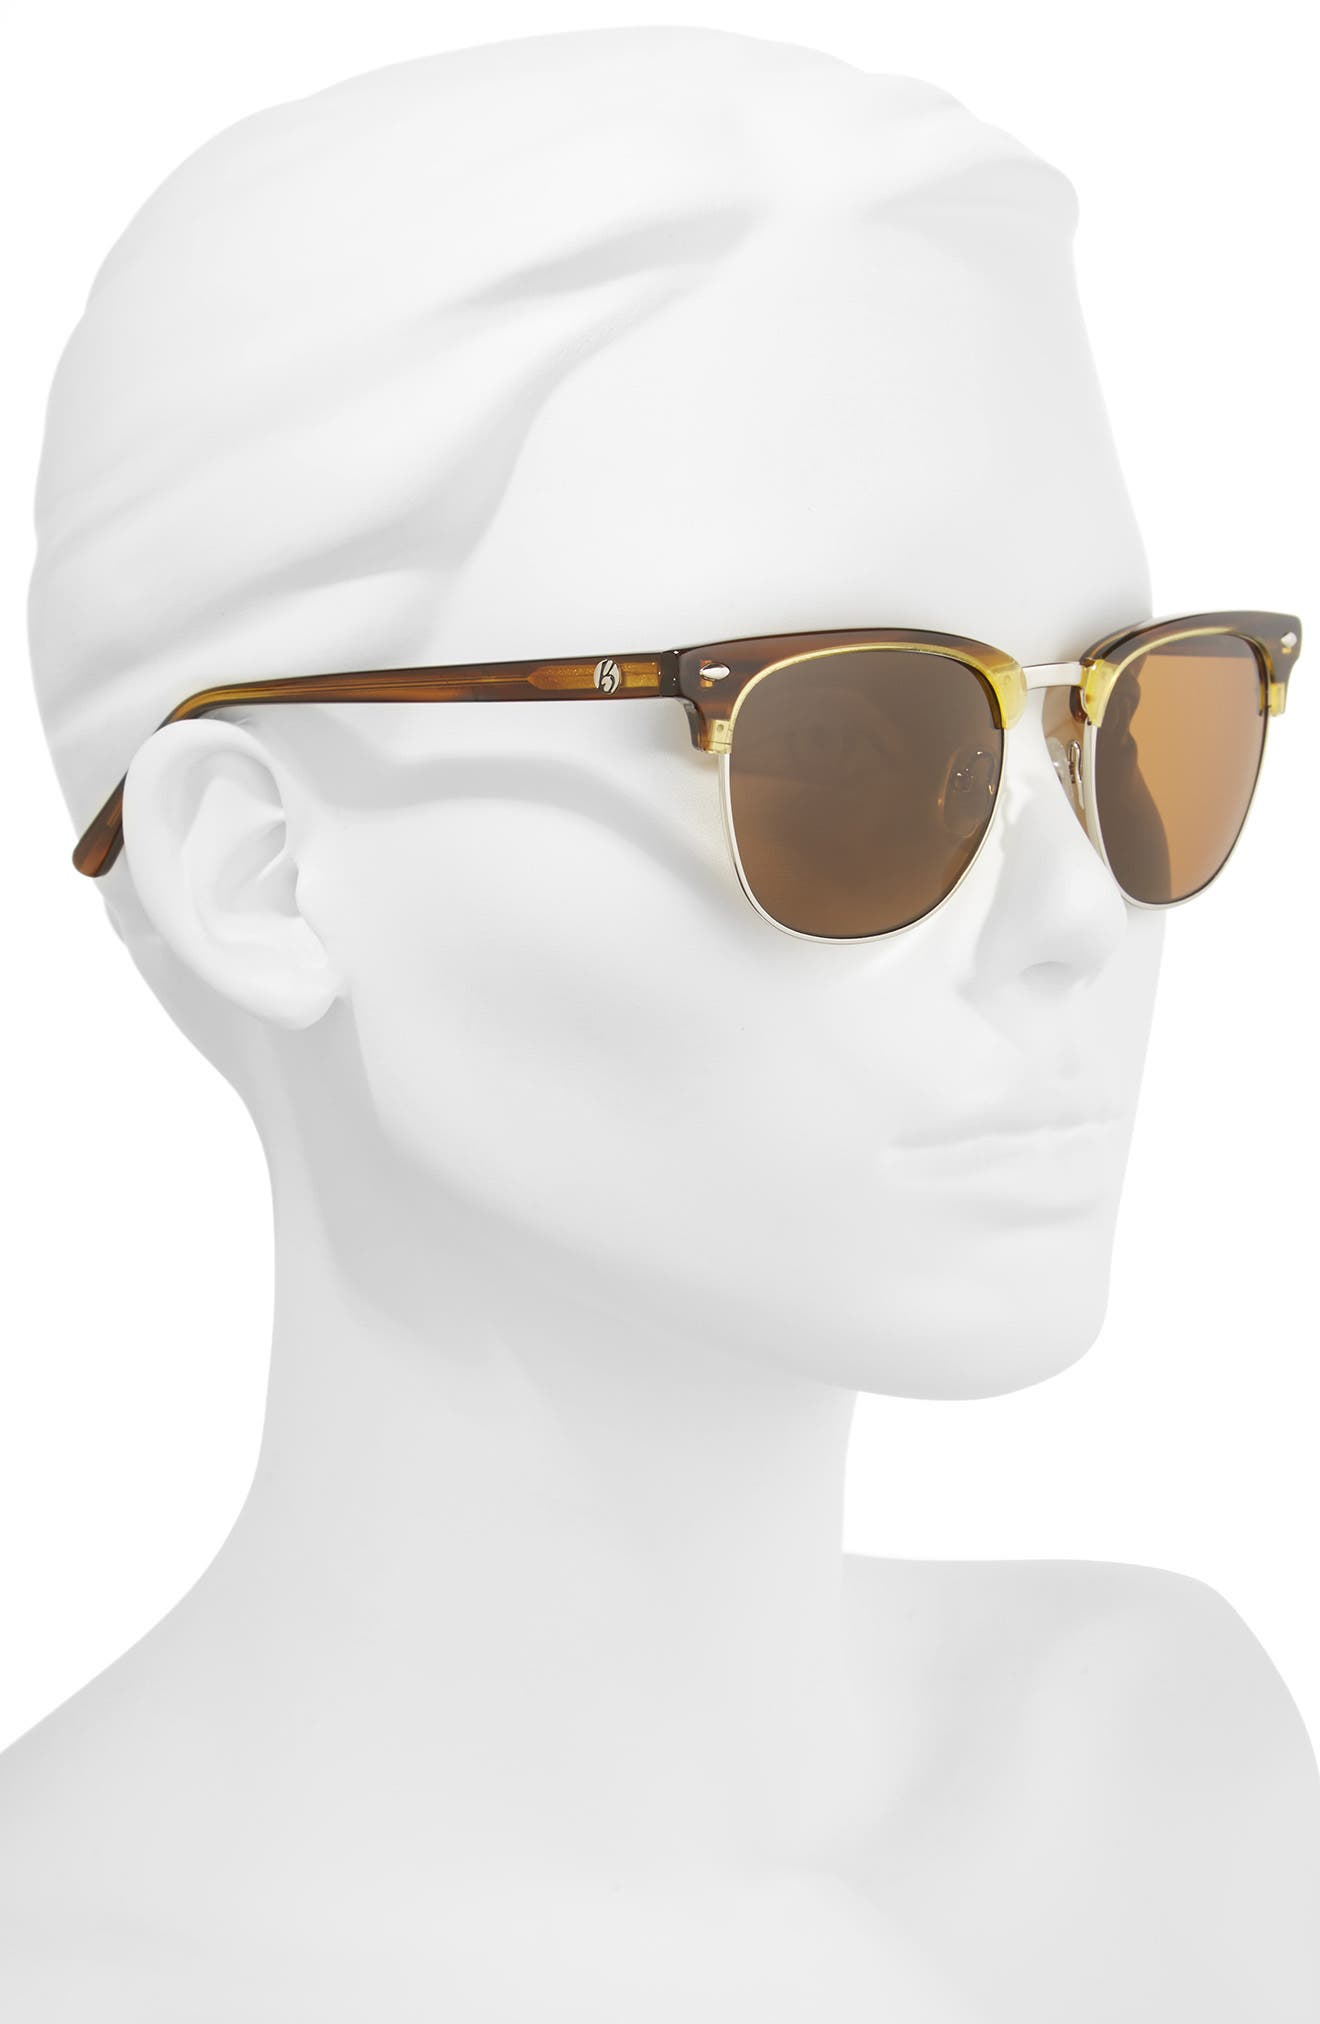 Copeland 51mm Polarized Sunglasses,                             Alternate thumbnail 2, color,                             Amber/ Brown Polar